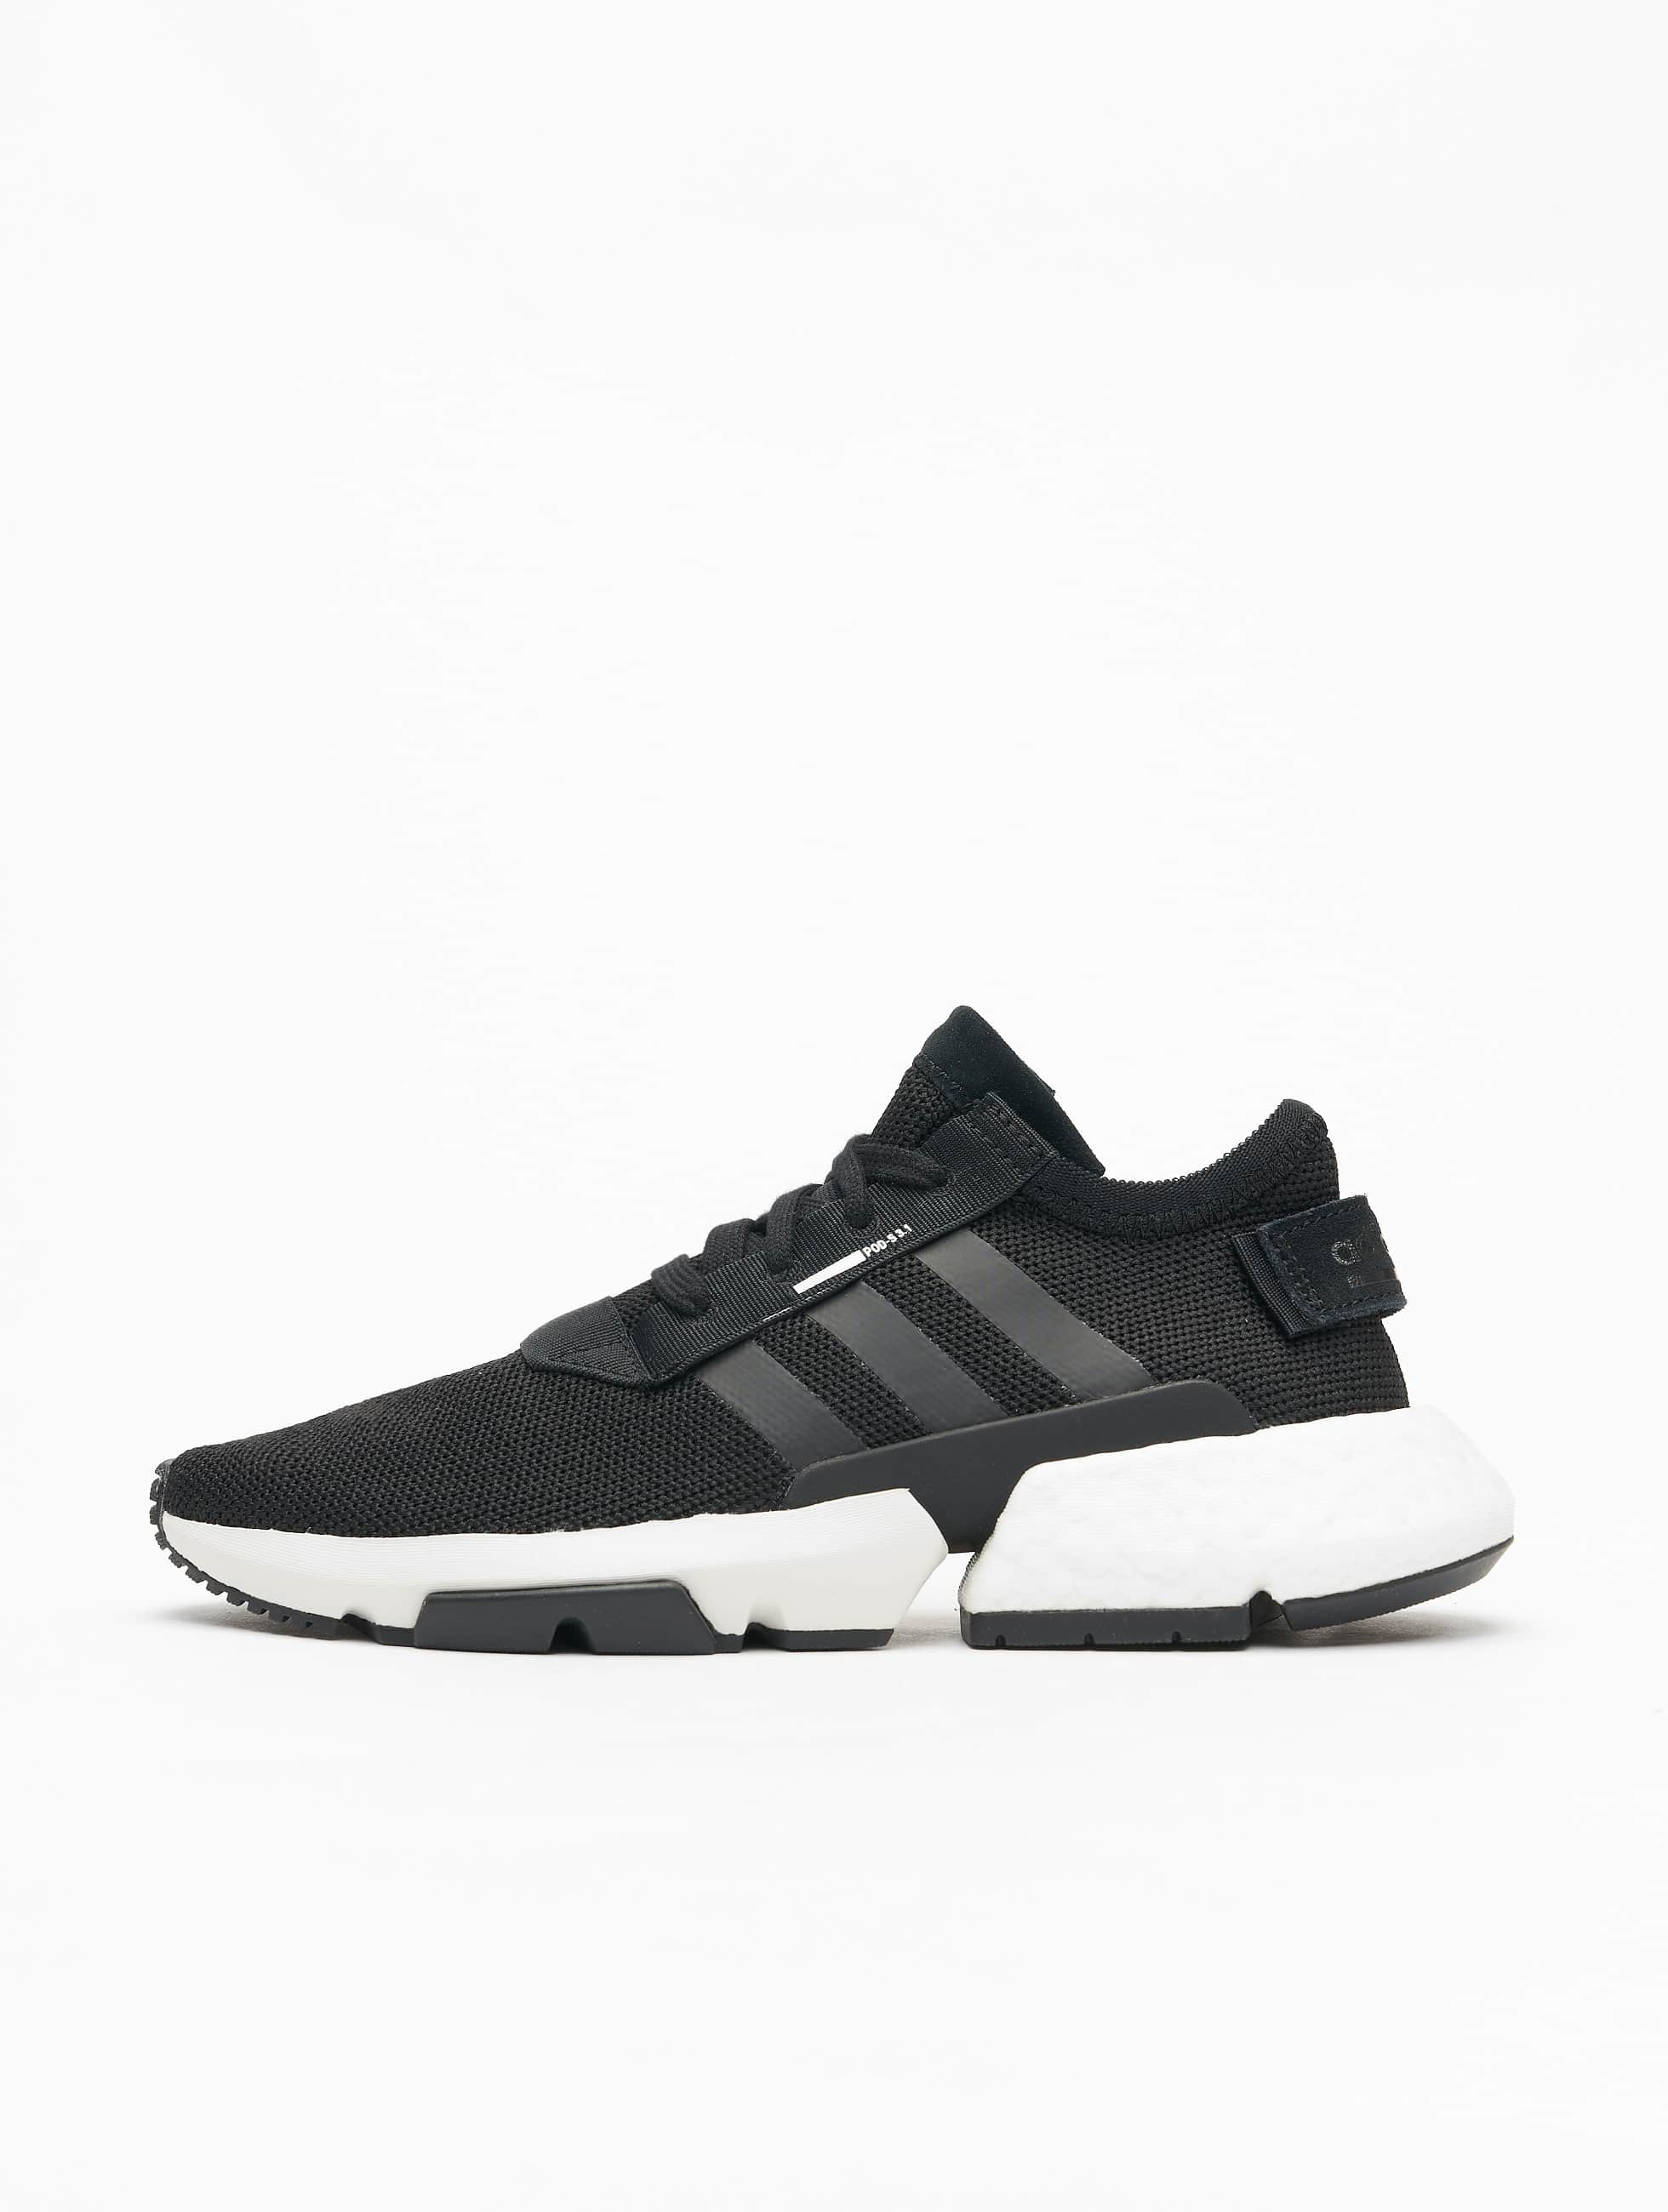 Adidas Skor Dam Billigt,Outlet Adidas Originals Pod s3.1